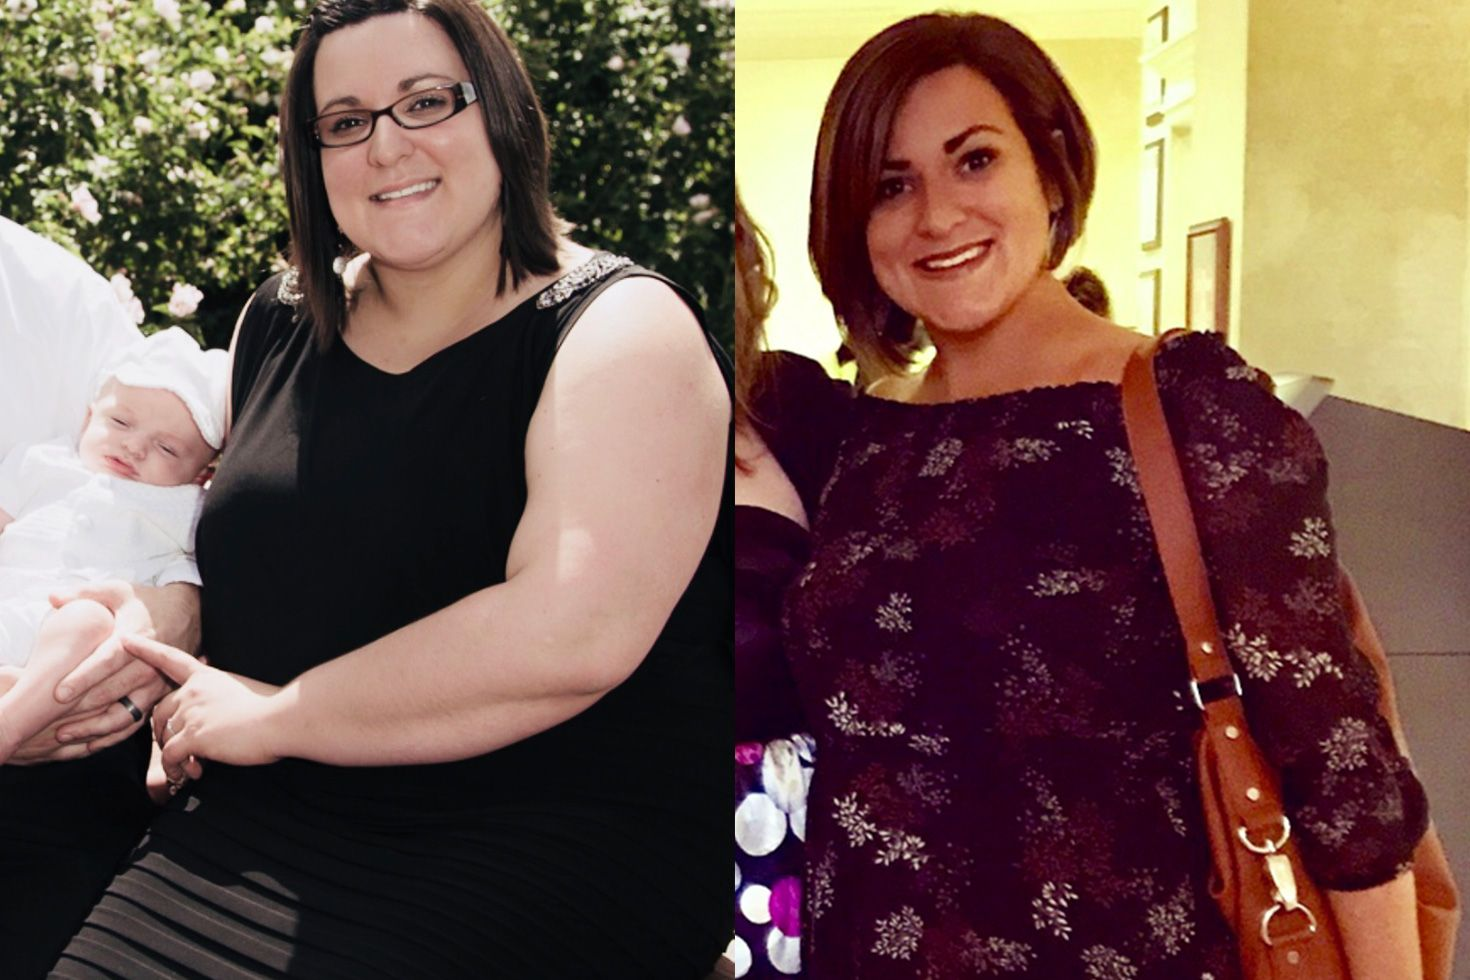 Kara Cline weight loss inpsiration